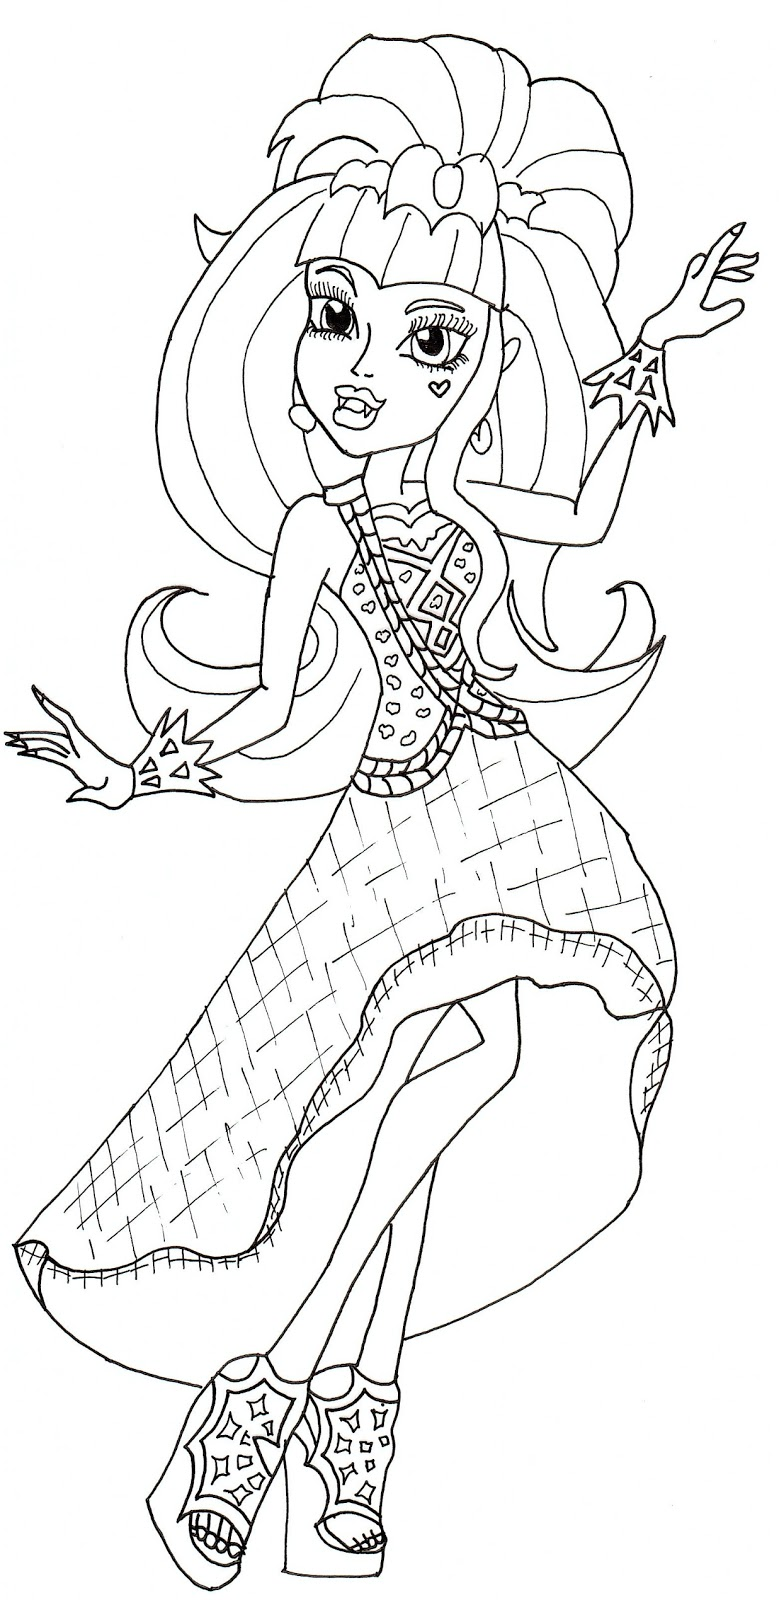 Free coloring pages of monster high 13 wishes